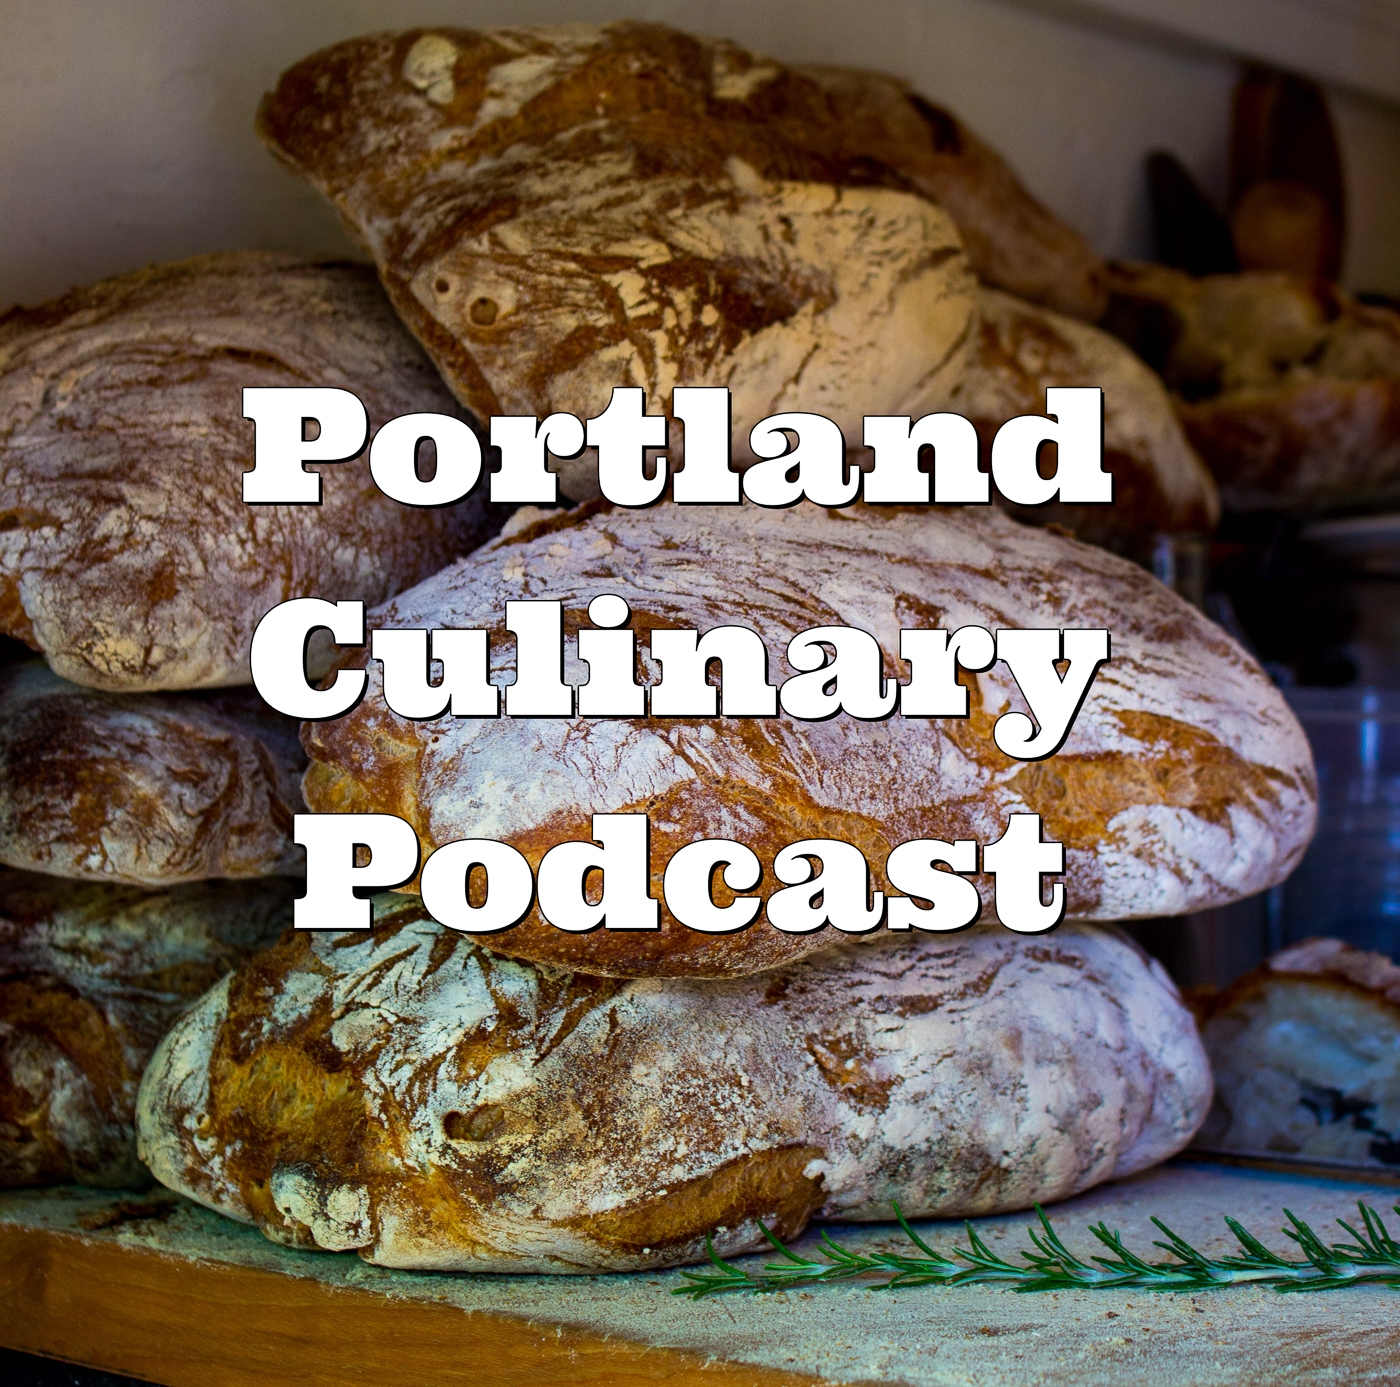 Oregon Winemaker Anne Hubatch Helioterra Wines - Portland Culinary Podcast Episode 16